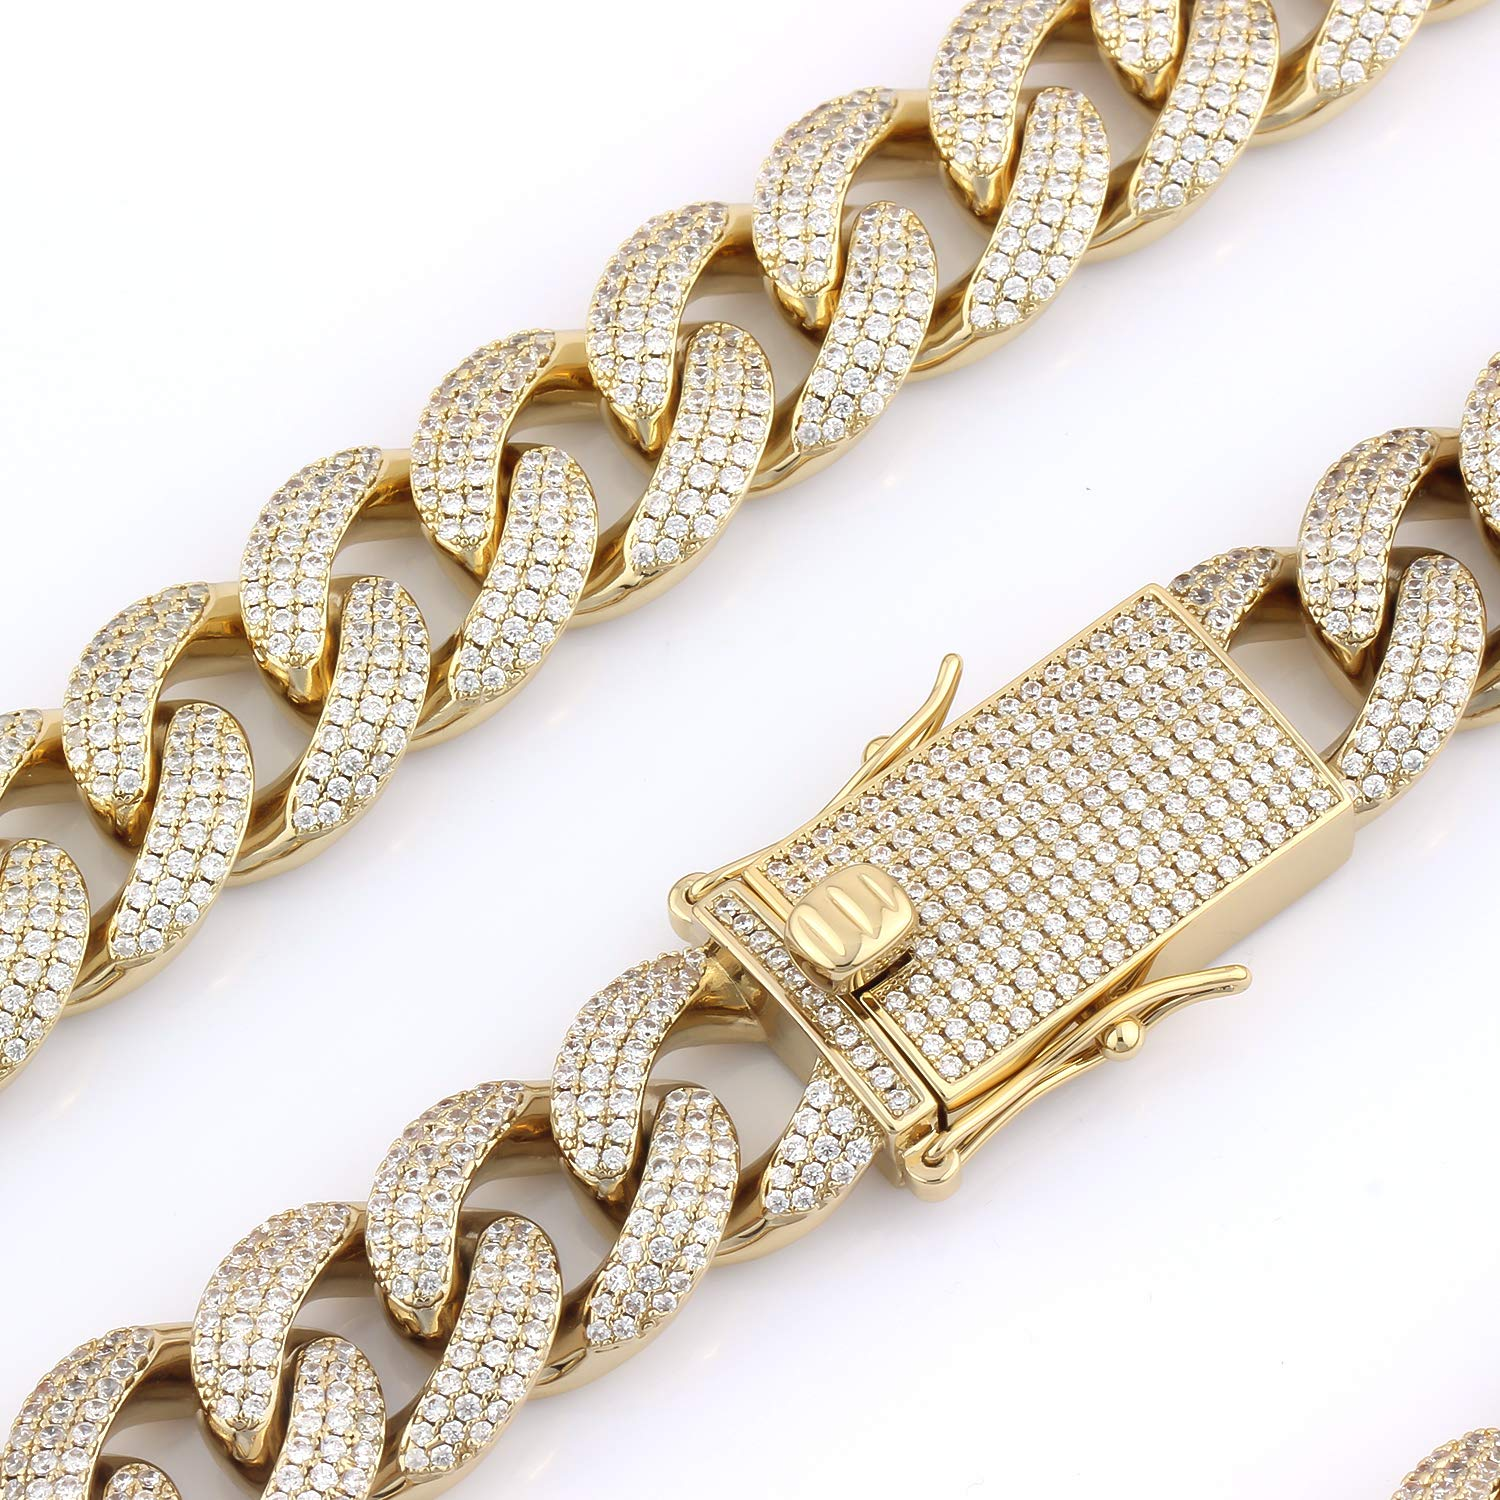 9c3f68273b081 GOLD IDEA JEWELRY 18mm Iced Out Cubic Zirconia Hip Hop Miami Cuban Link  Bracelet for Men 8.5